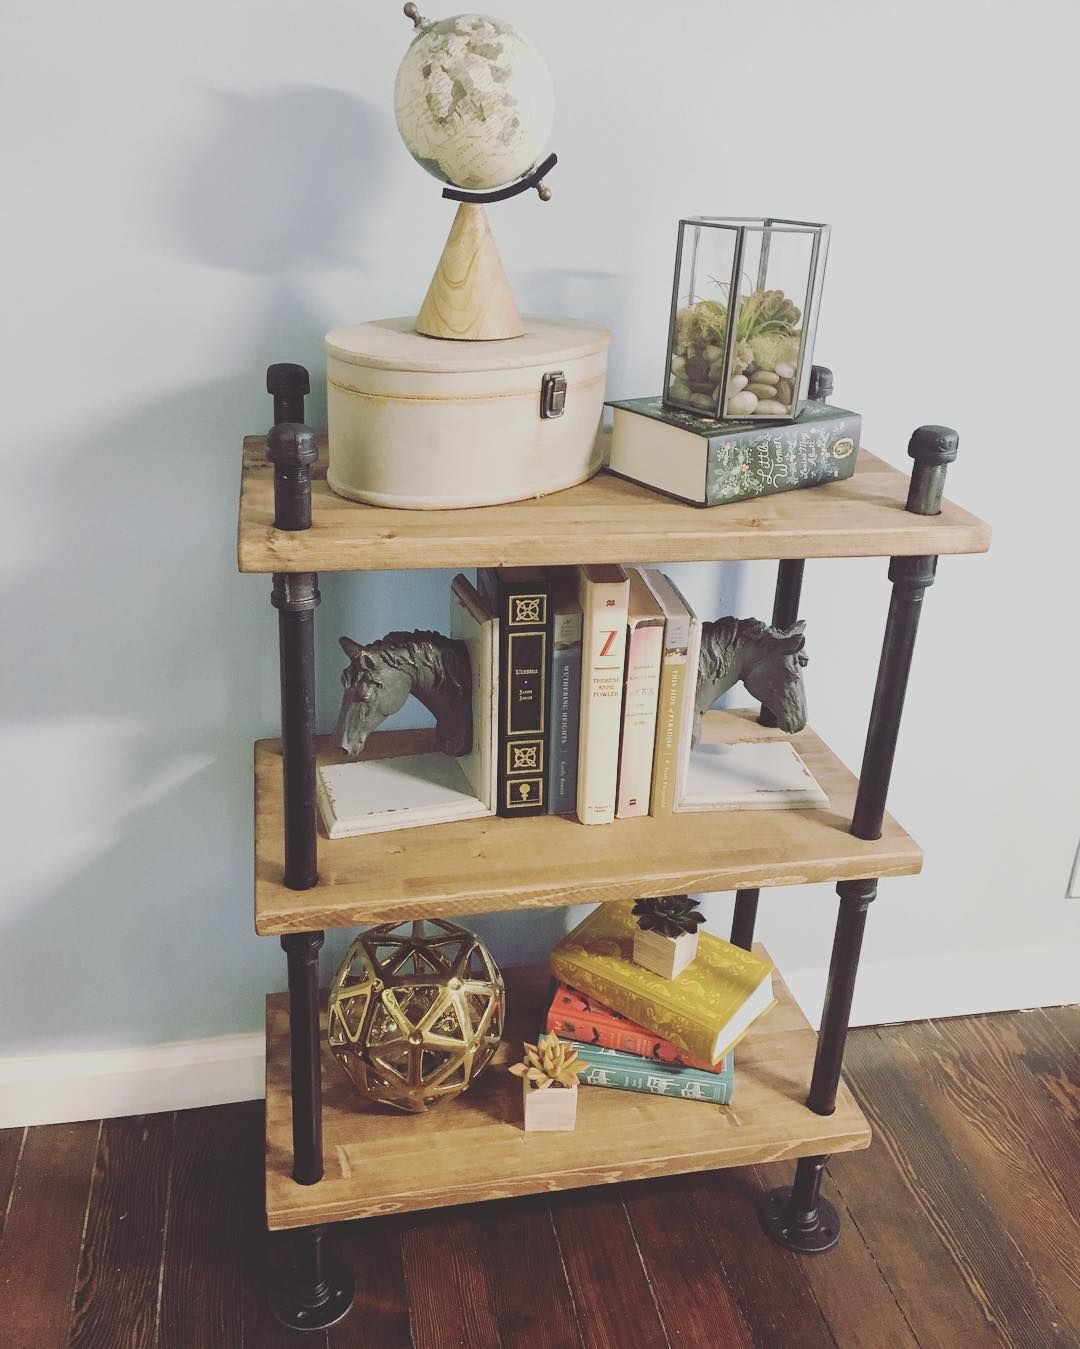 Just Finished Up This Industrial Black Pipe Bookshelf Build Video Coming Soon Diy Diyproject Industrialdesi Bookshelves Built In Pipe Bookshelf Home Decor